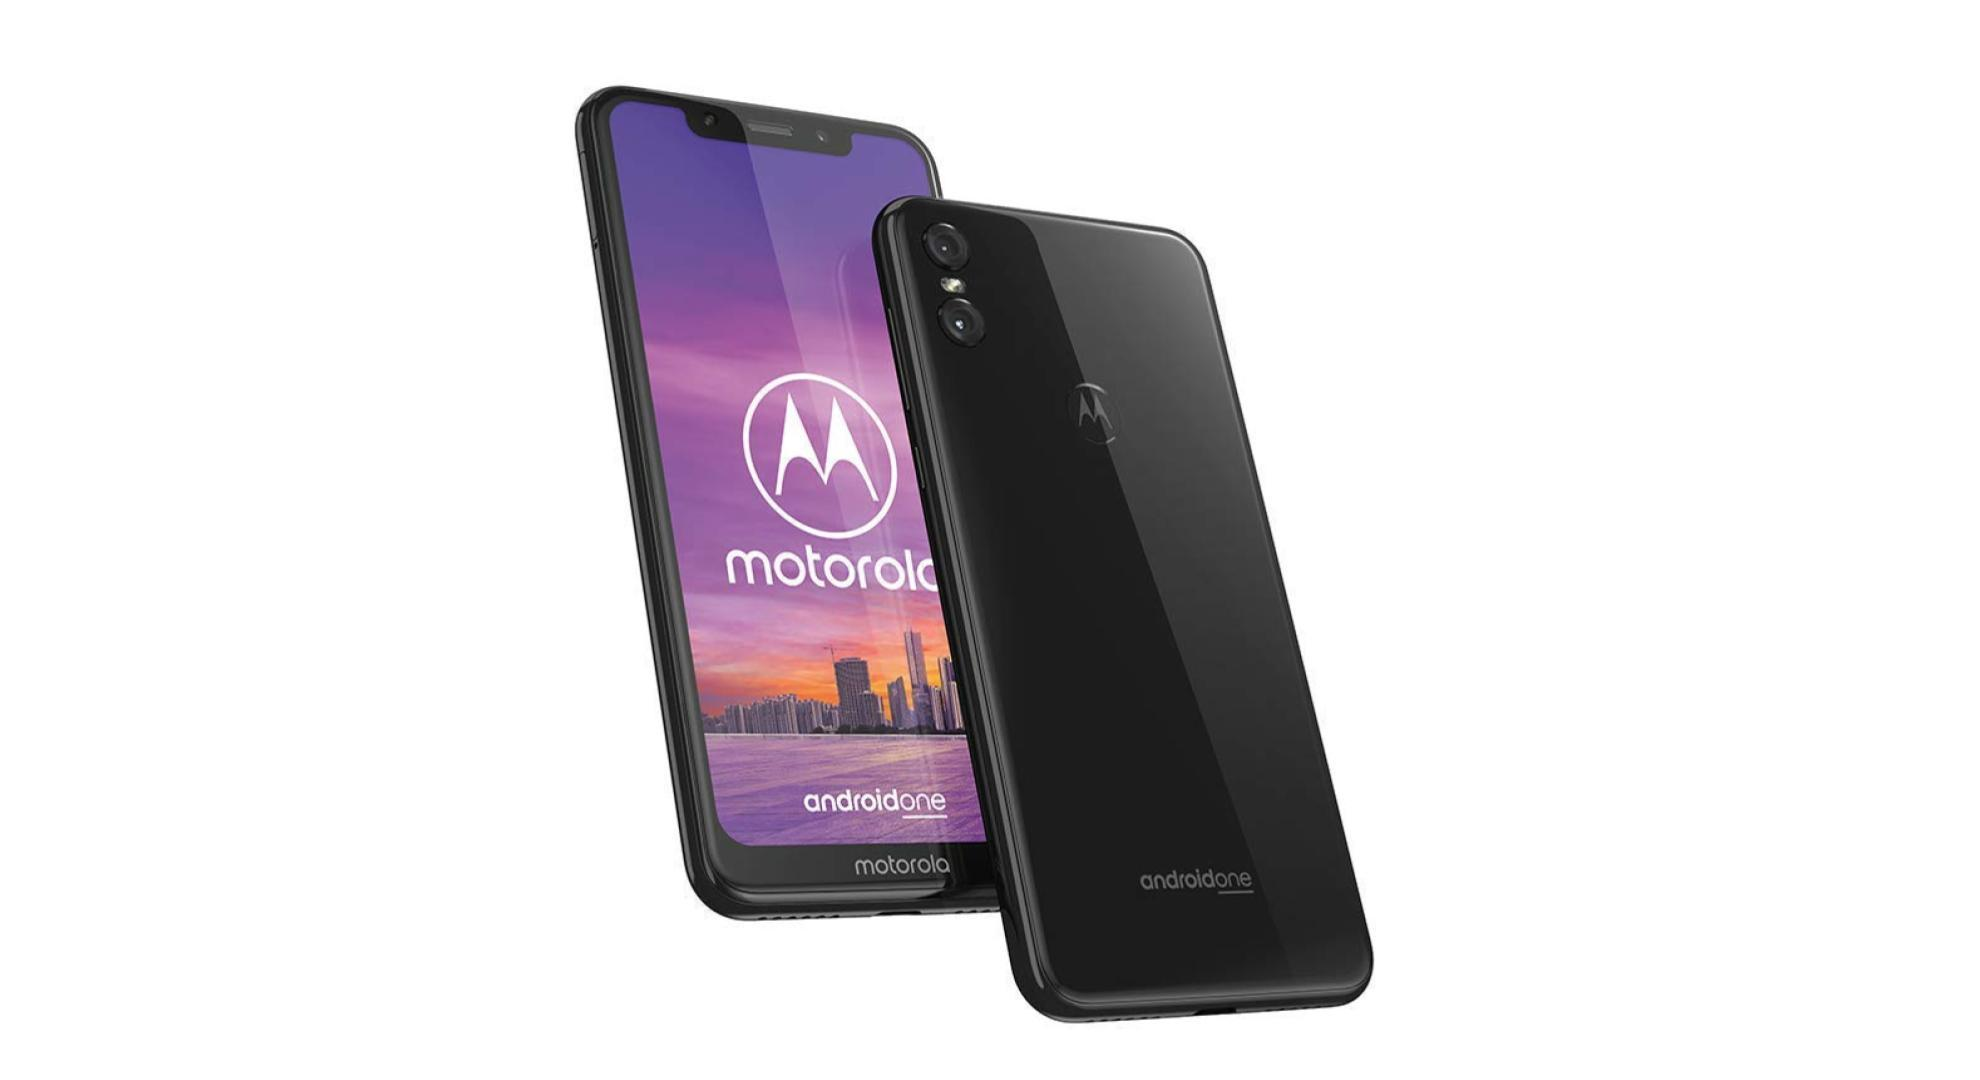 🔥 Cyber Monday : le prix du Motorola One descend à 184,99 euros